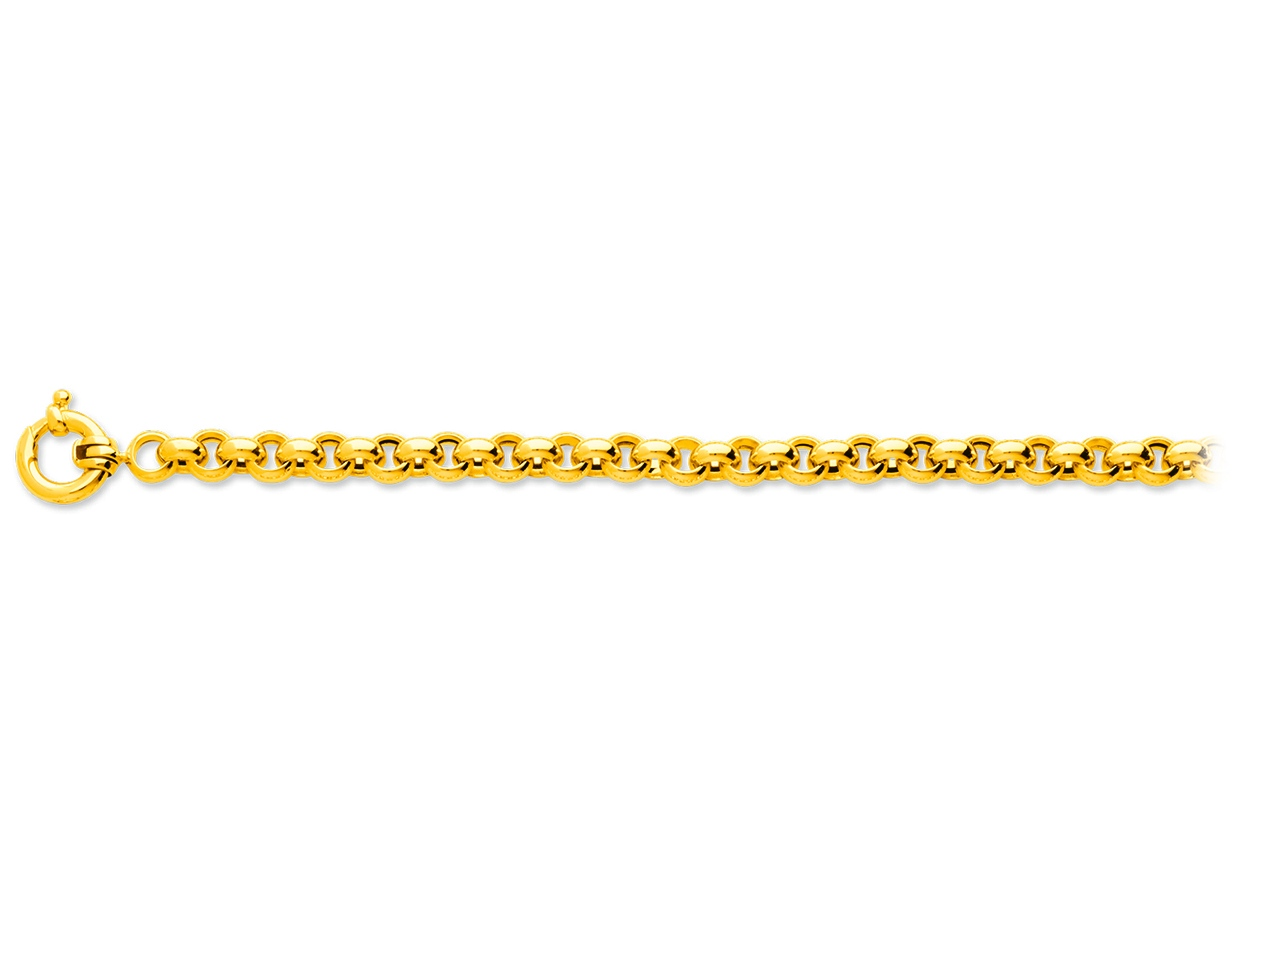 Collier maille Jaseron 7,3 mm, 50 cm, Or jaune 18k